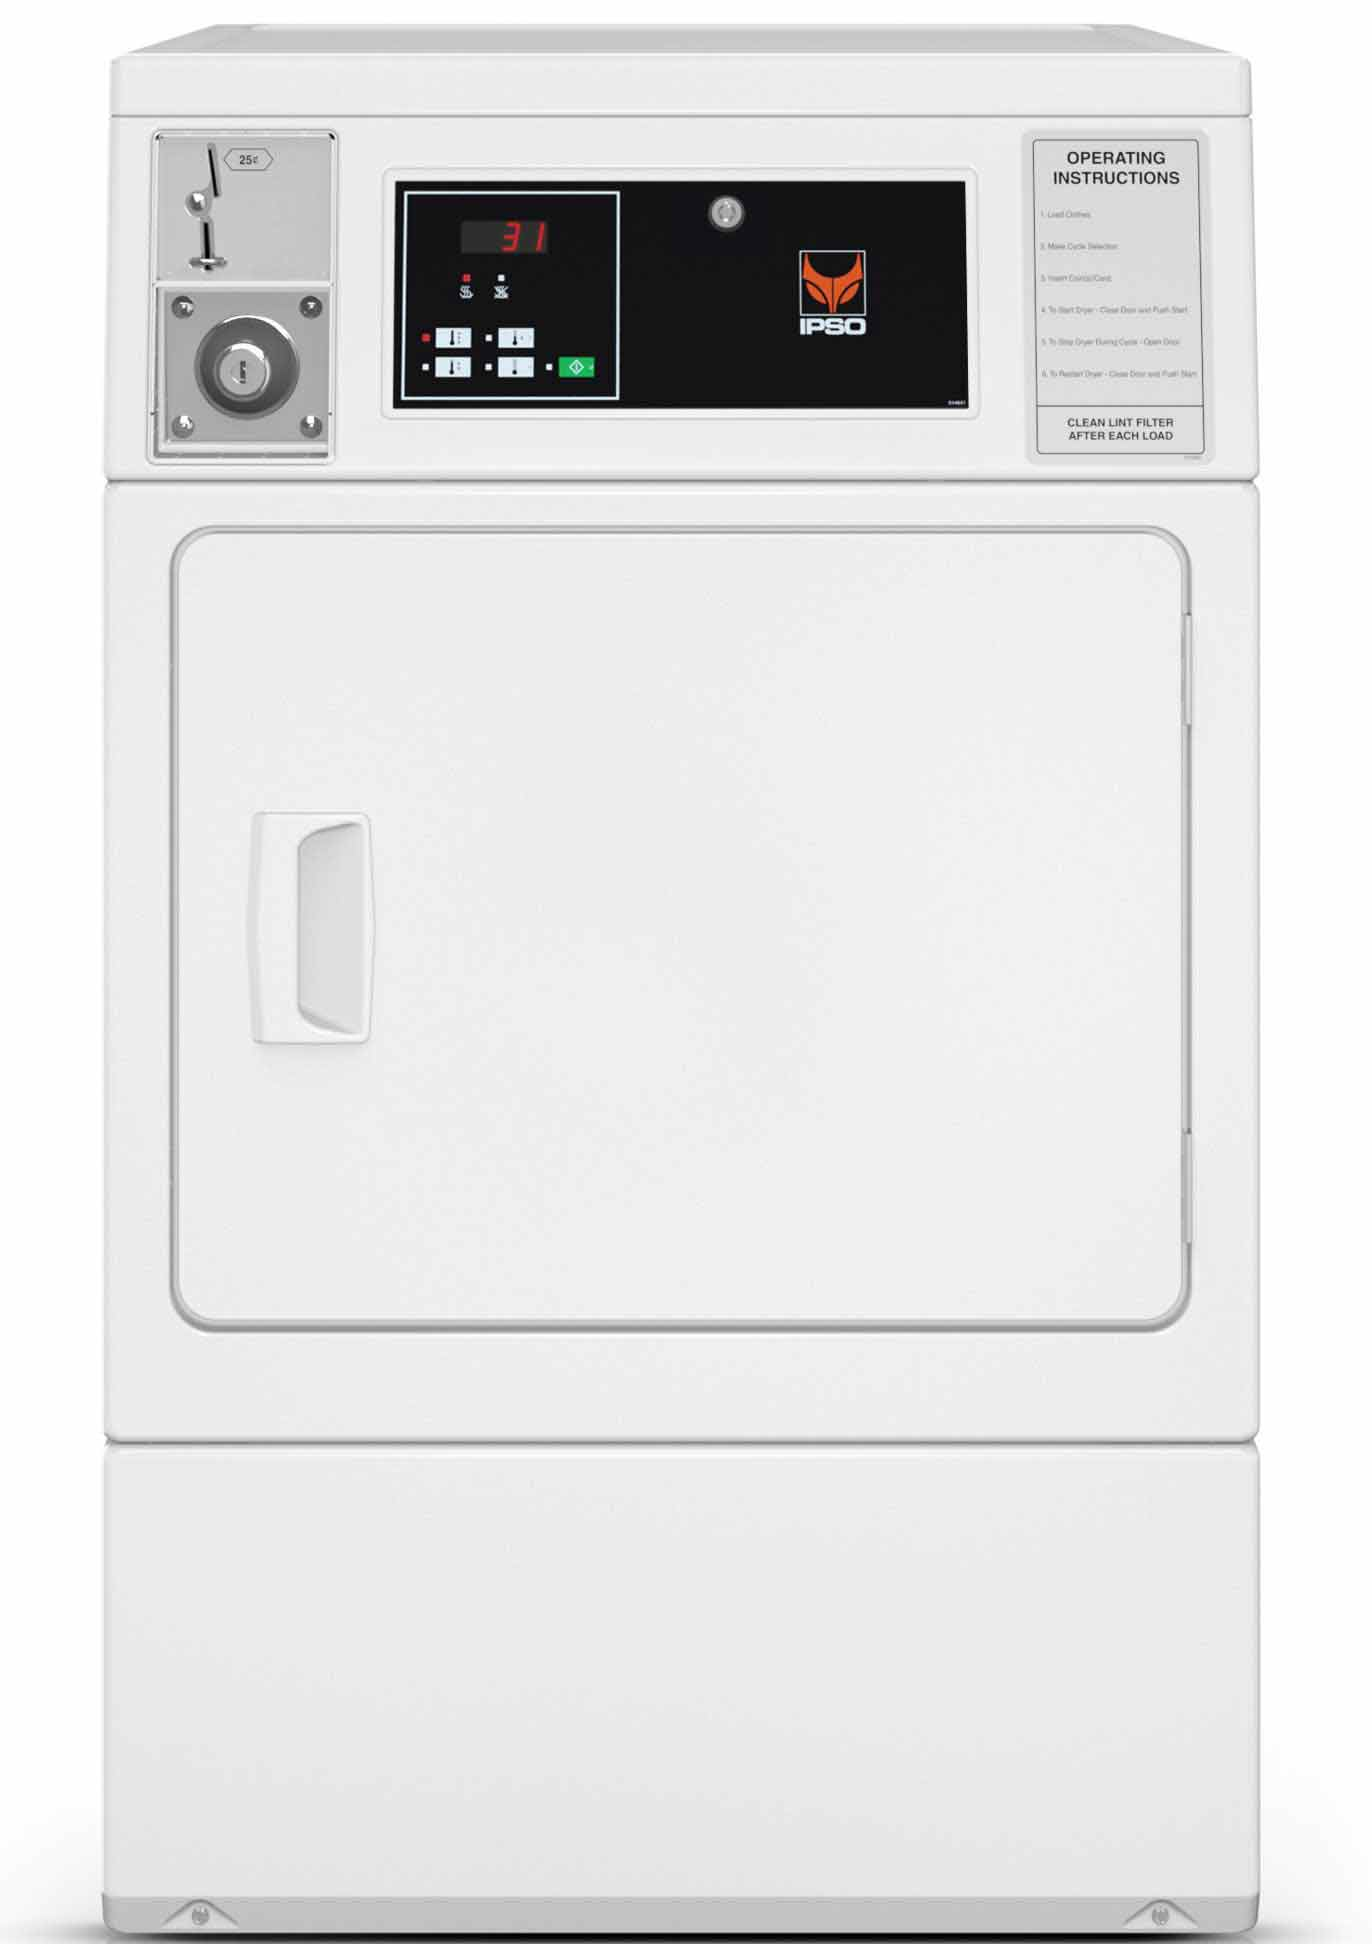 Small Dryer Front Control